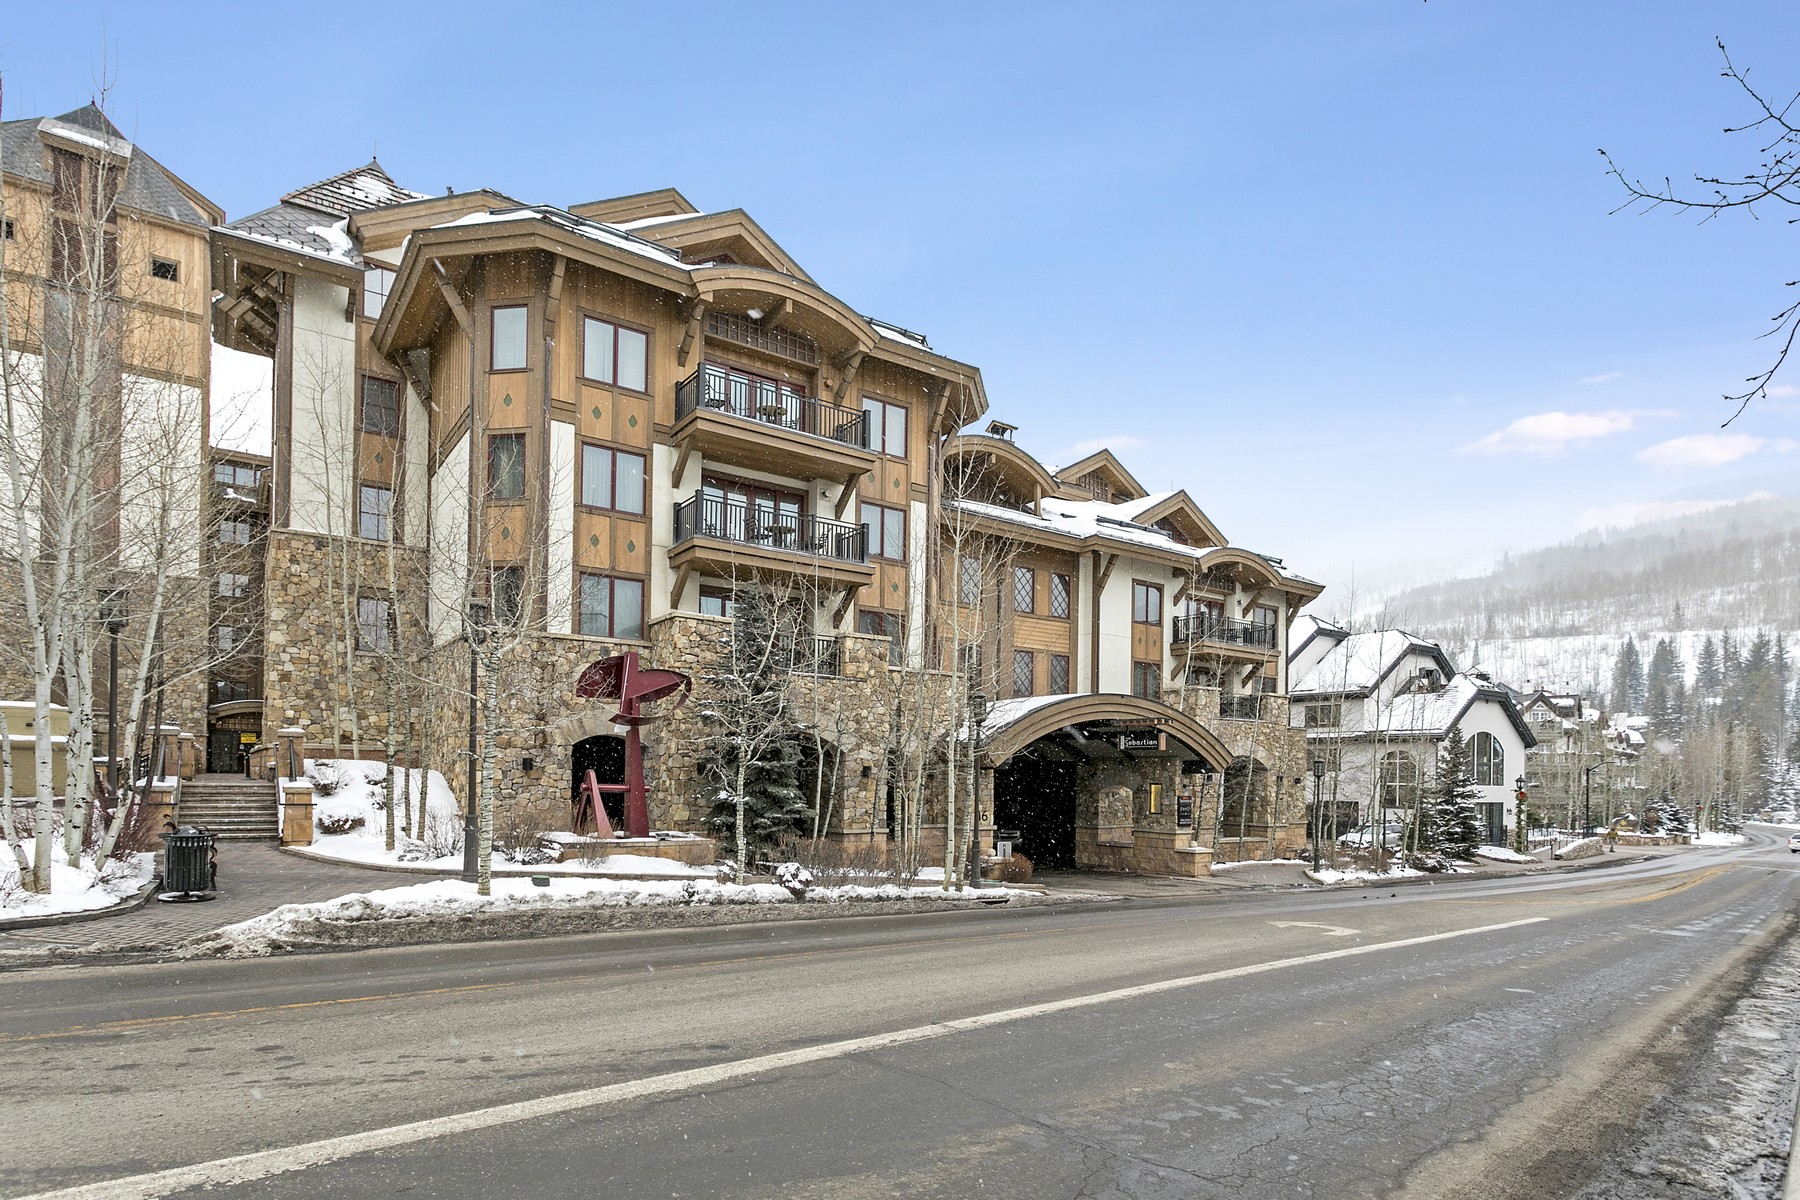 Fractional Ownership for Active at World Class Amenities In The Heart of Vail 16 Vail Road #310 Vail, Colorado 81657 United States